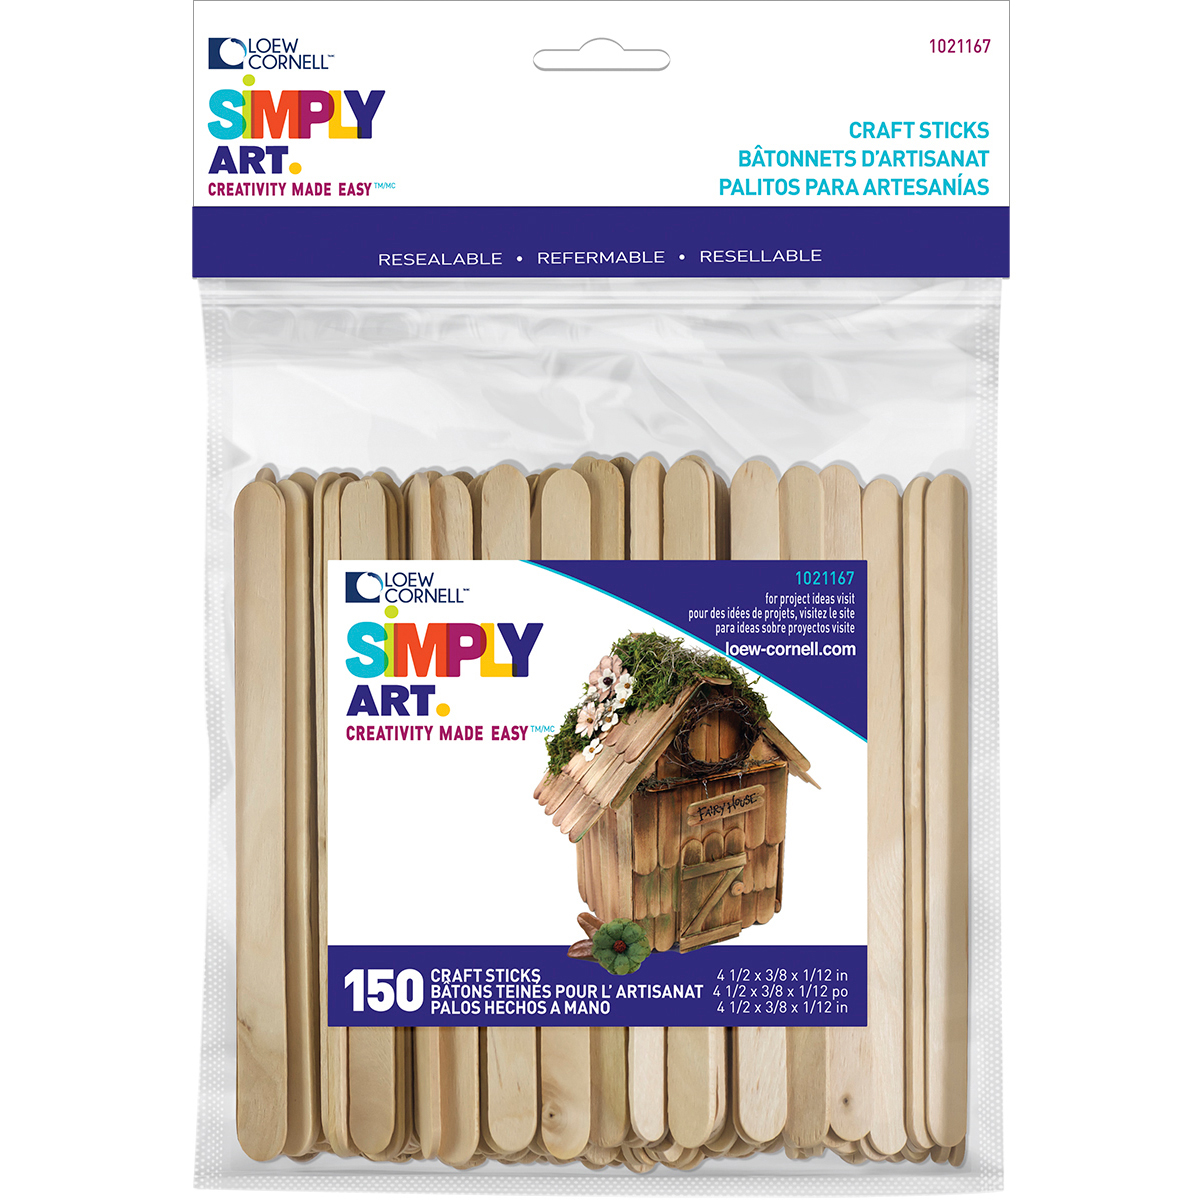 CRAFT STICKS 150 CT